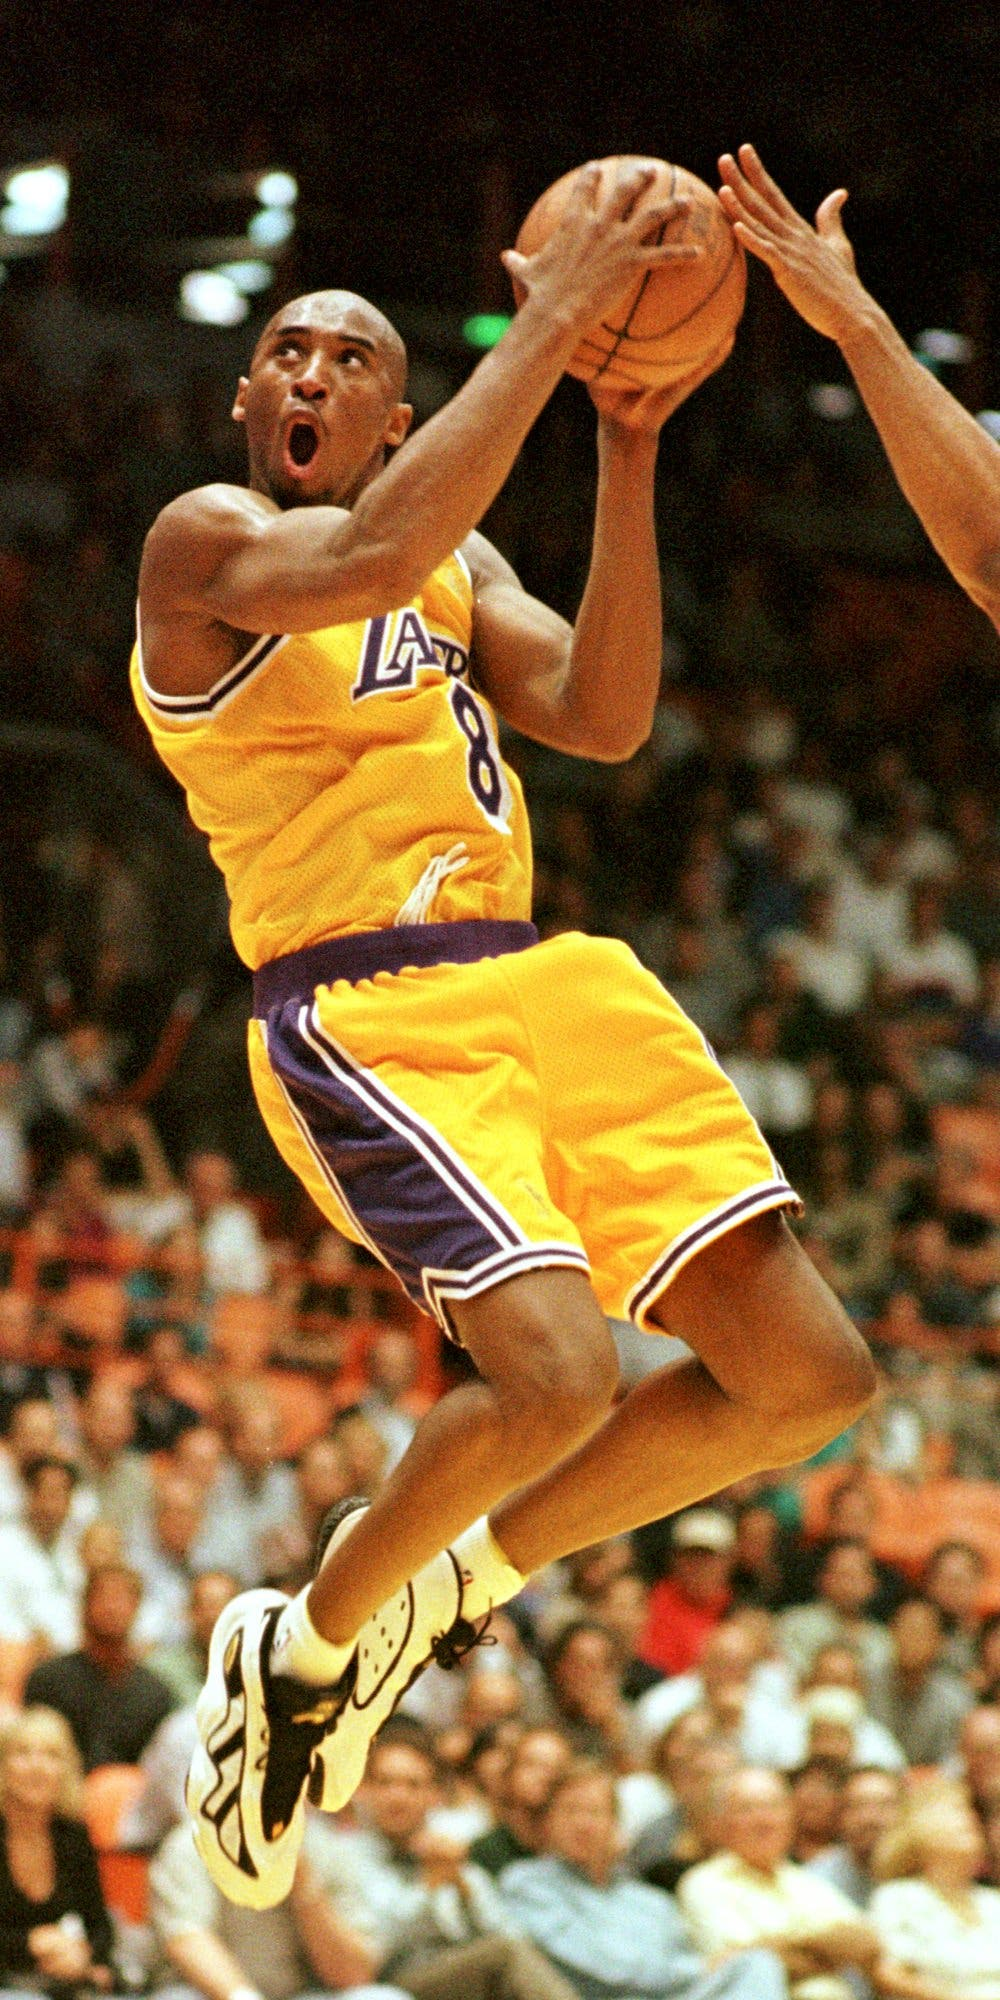 Kobe Bryant of the Los Angeles Lakers goes in for a layup against the Utah Jazz during the second half of their playoff game Thursday, May 8, 1997. (AP)